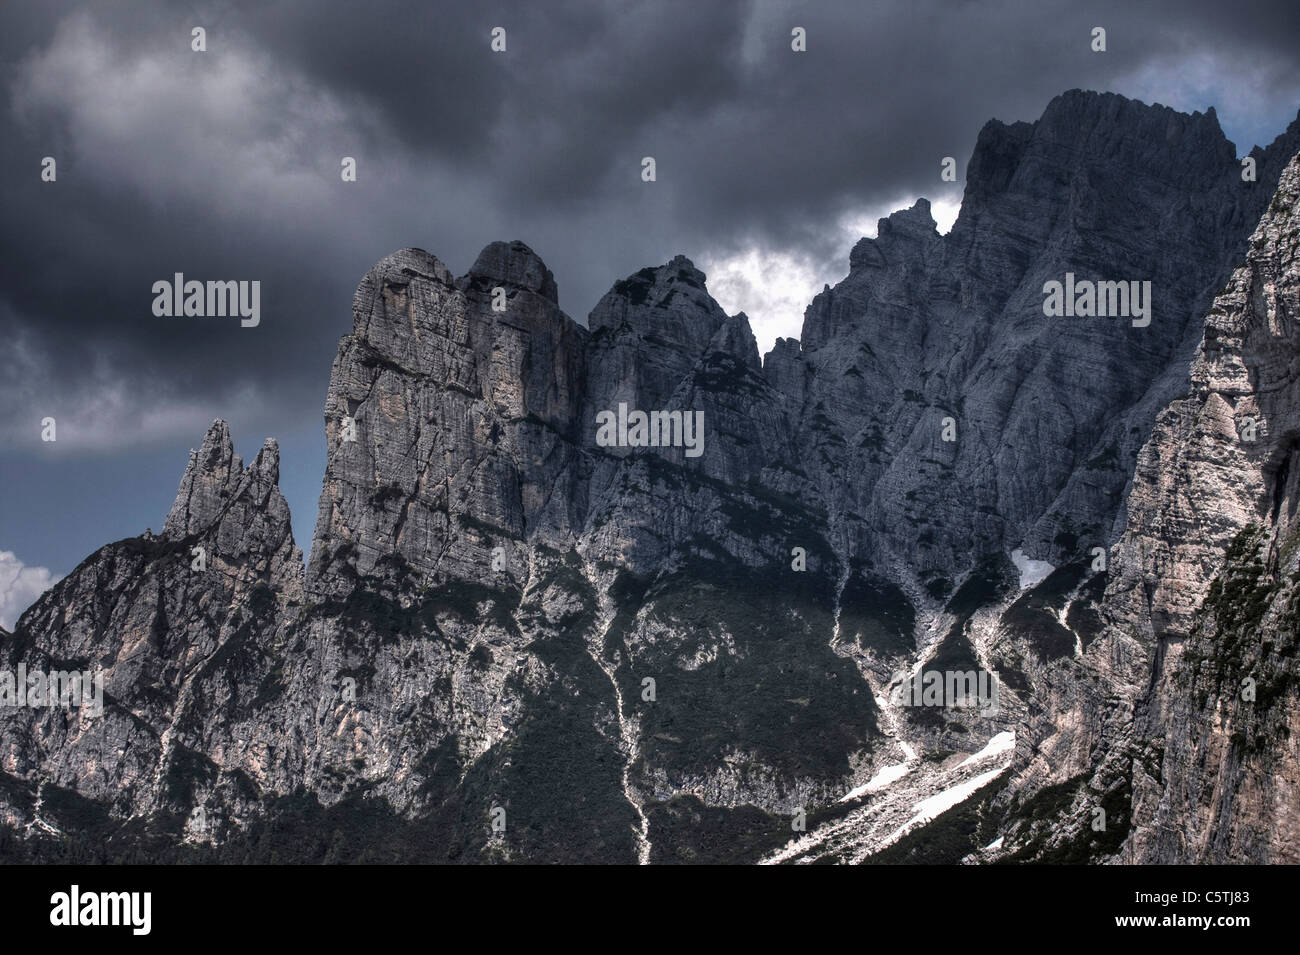 Italy, Dolomites, Rock face, Stormy atmosphere - Stock Image